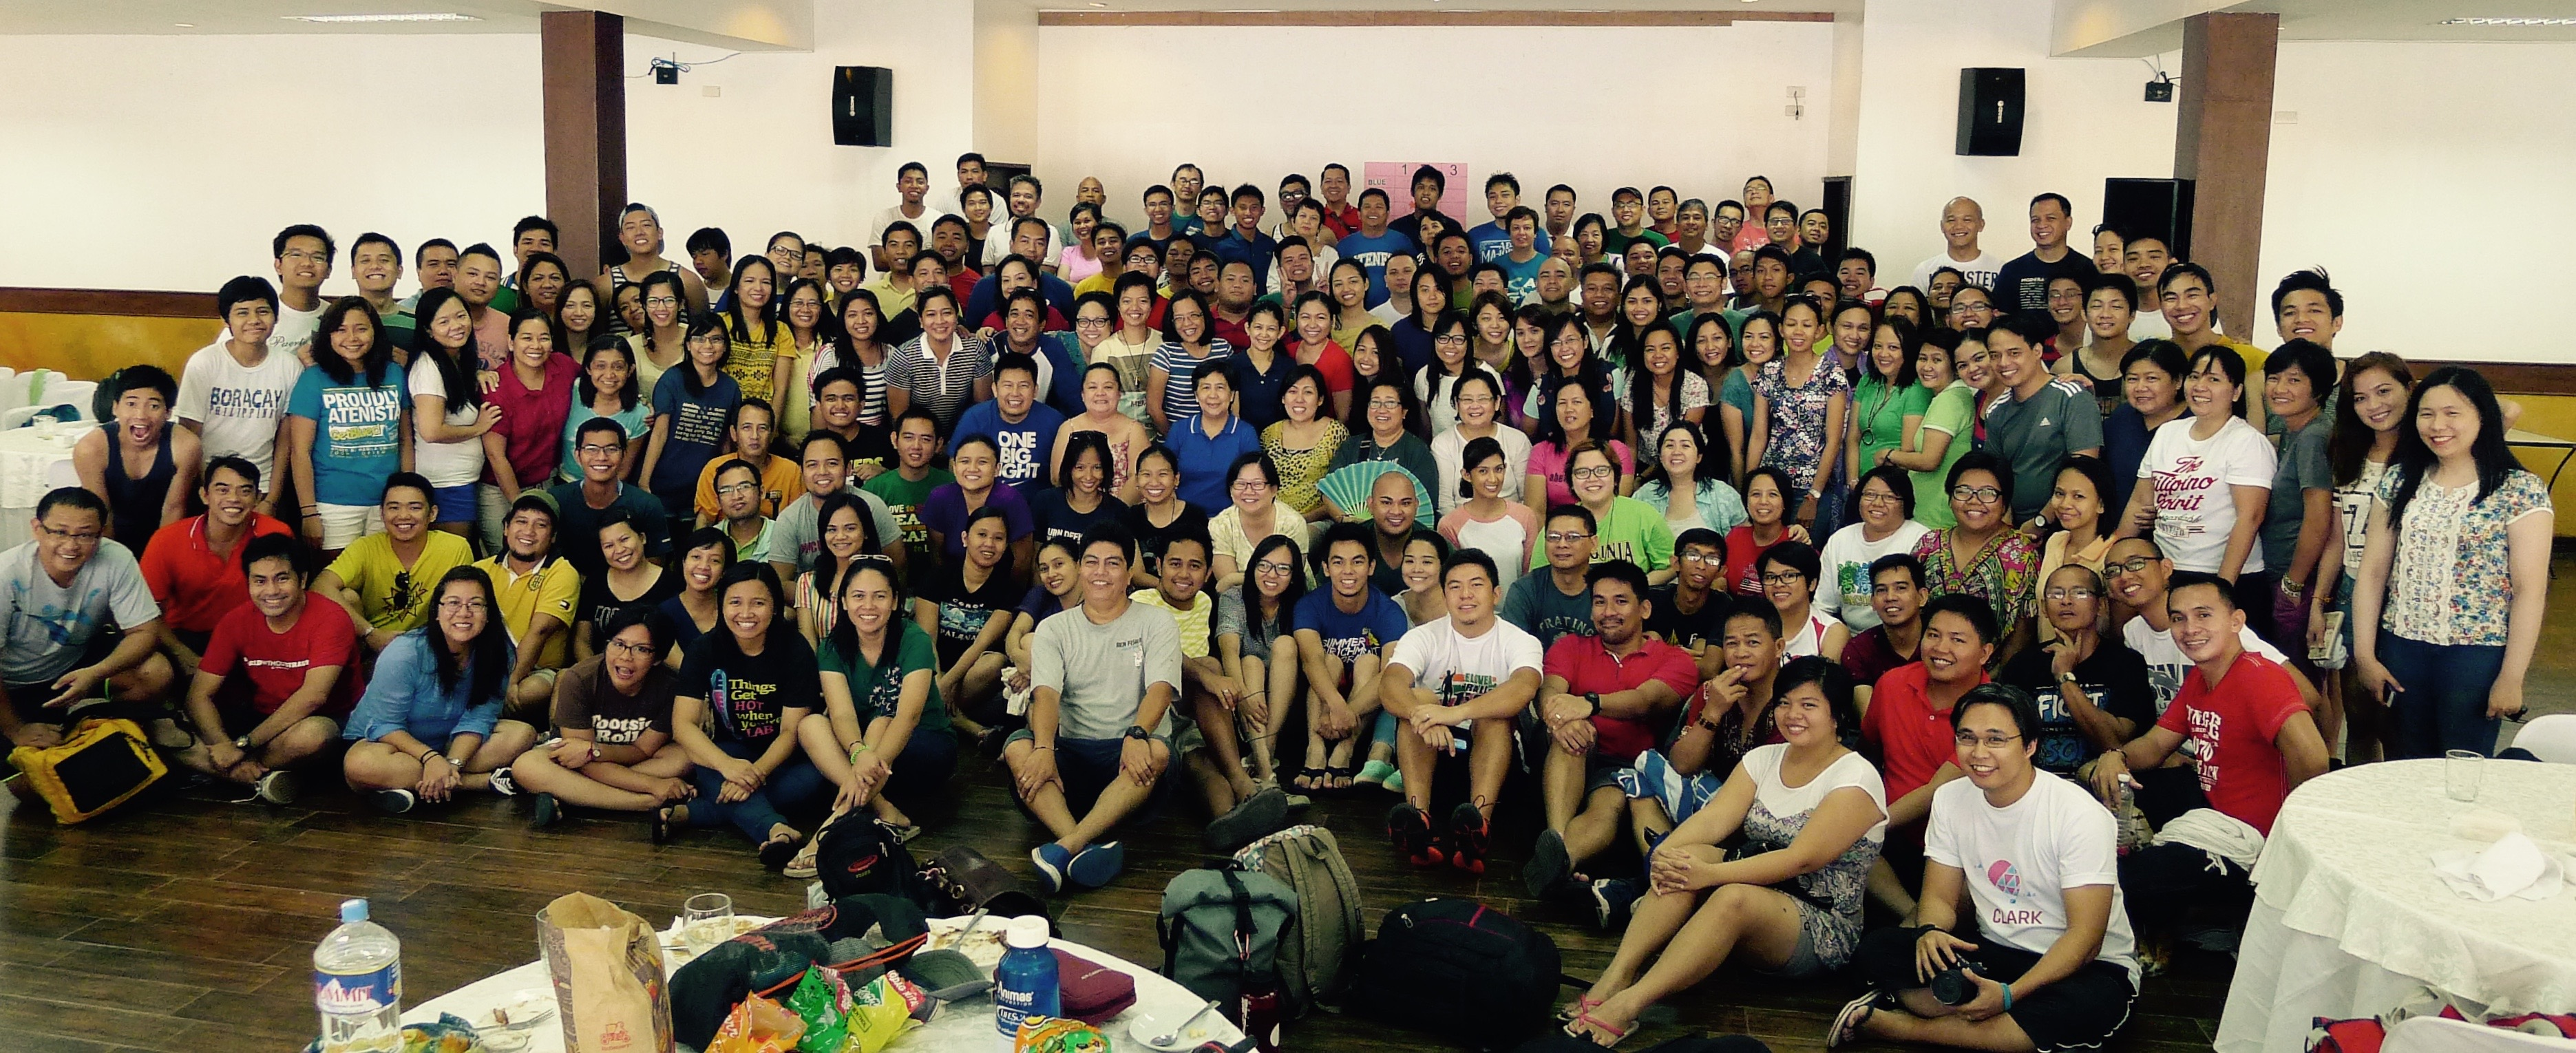 Our final photo session together as one unit: The AJHS and AHS community. Photo: JBoy Gonzales SJ